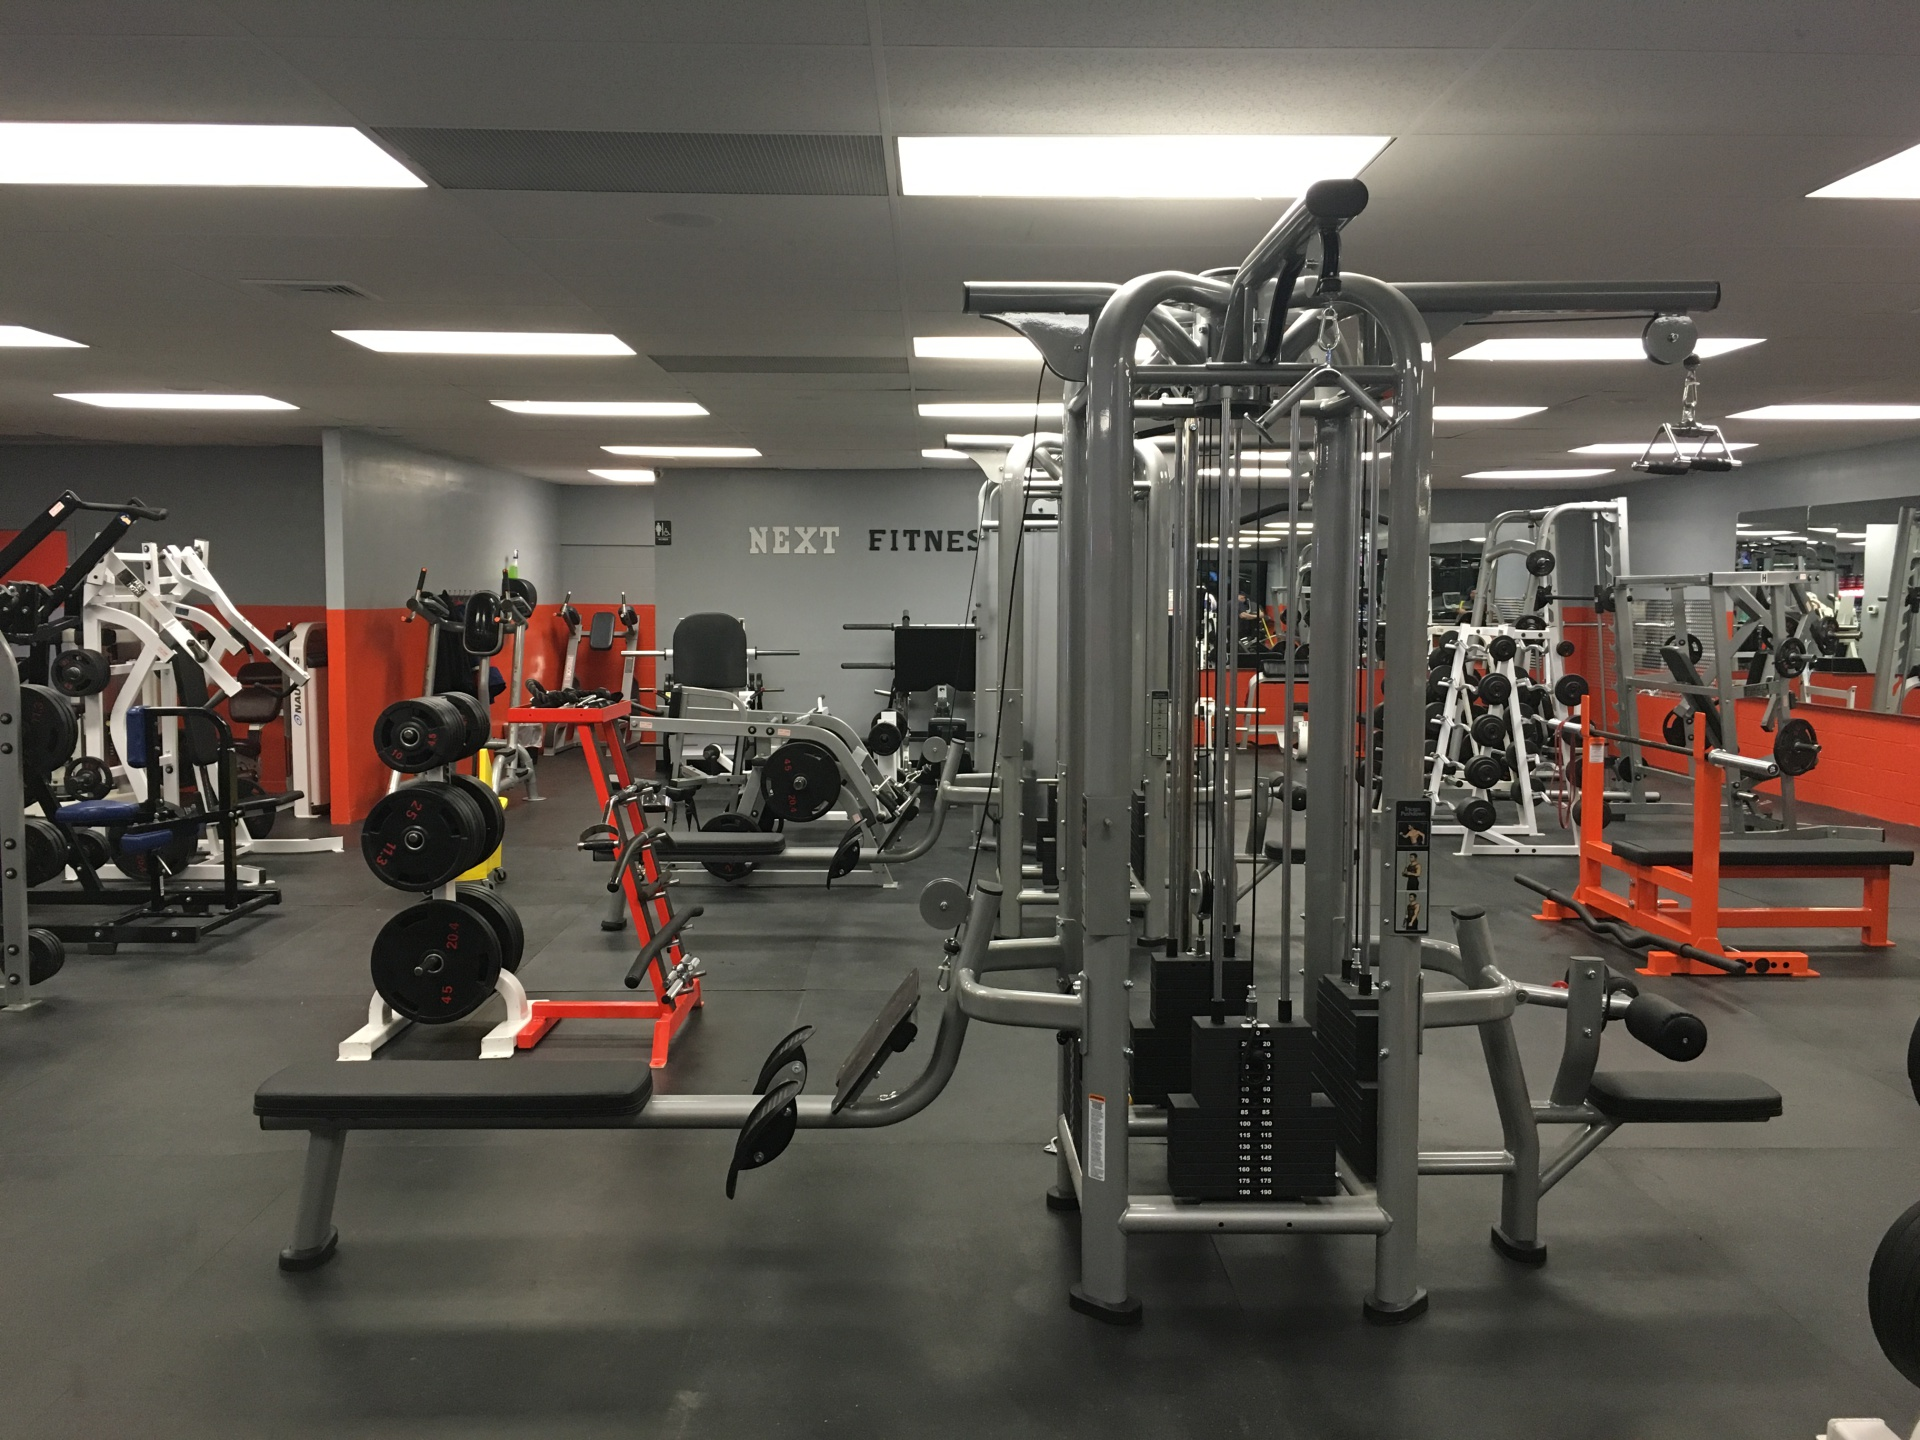 Gym Memberships, Memberships, Fitness, Lifting, Weights, Fitness, Gym, Agawam MA, Feeding Hills